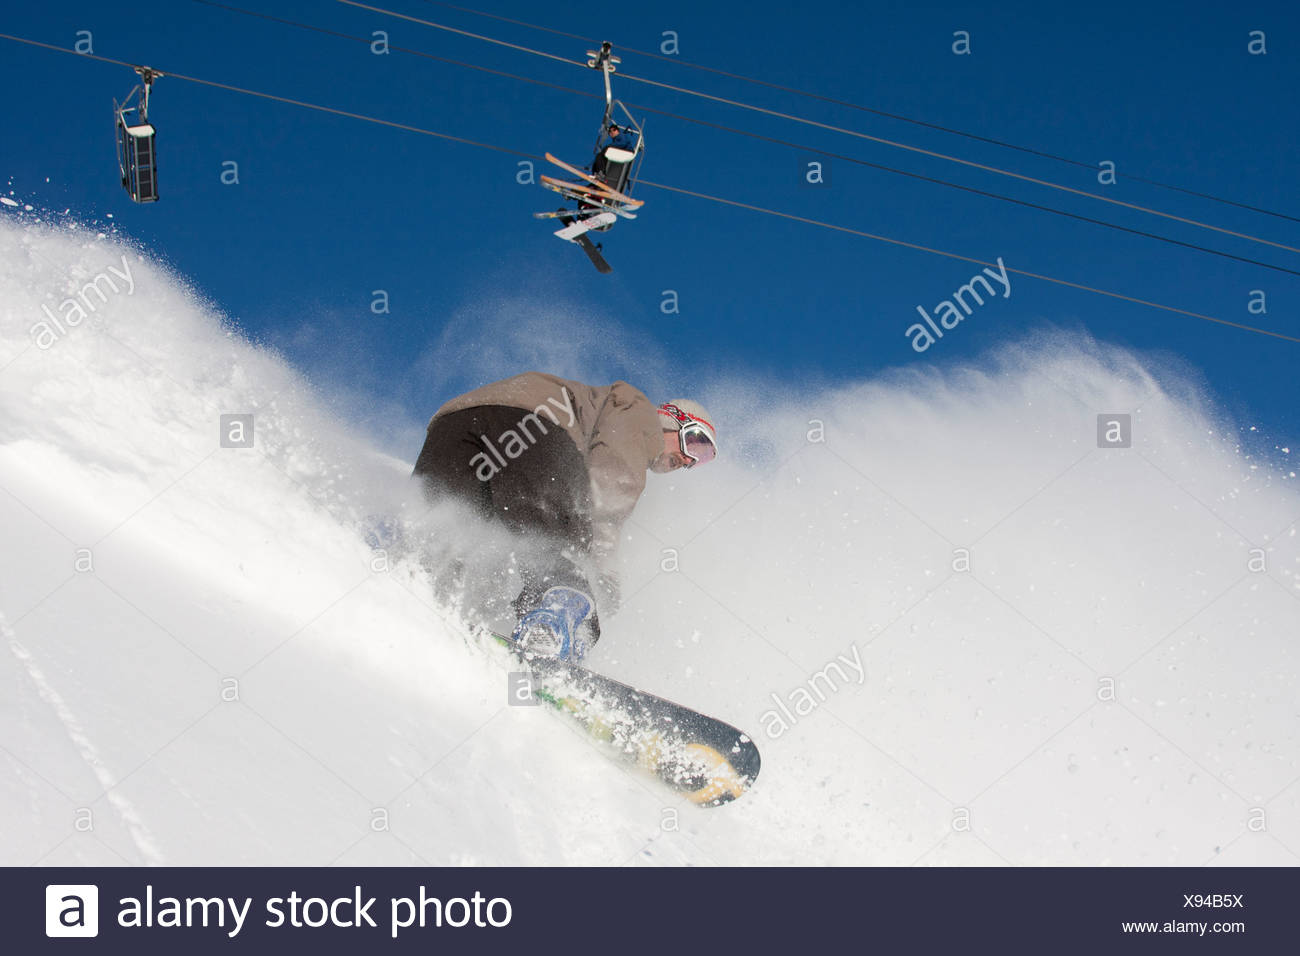 Chair lift stock photos chair lift stock images alamy for Chair 7 alyeska